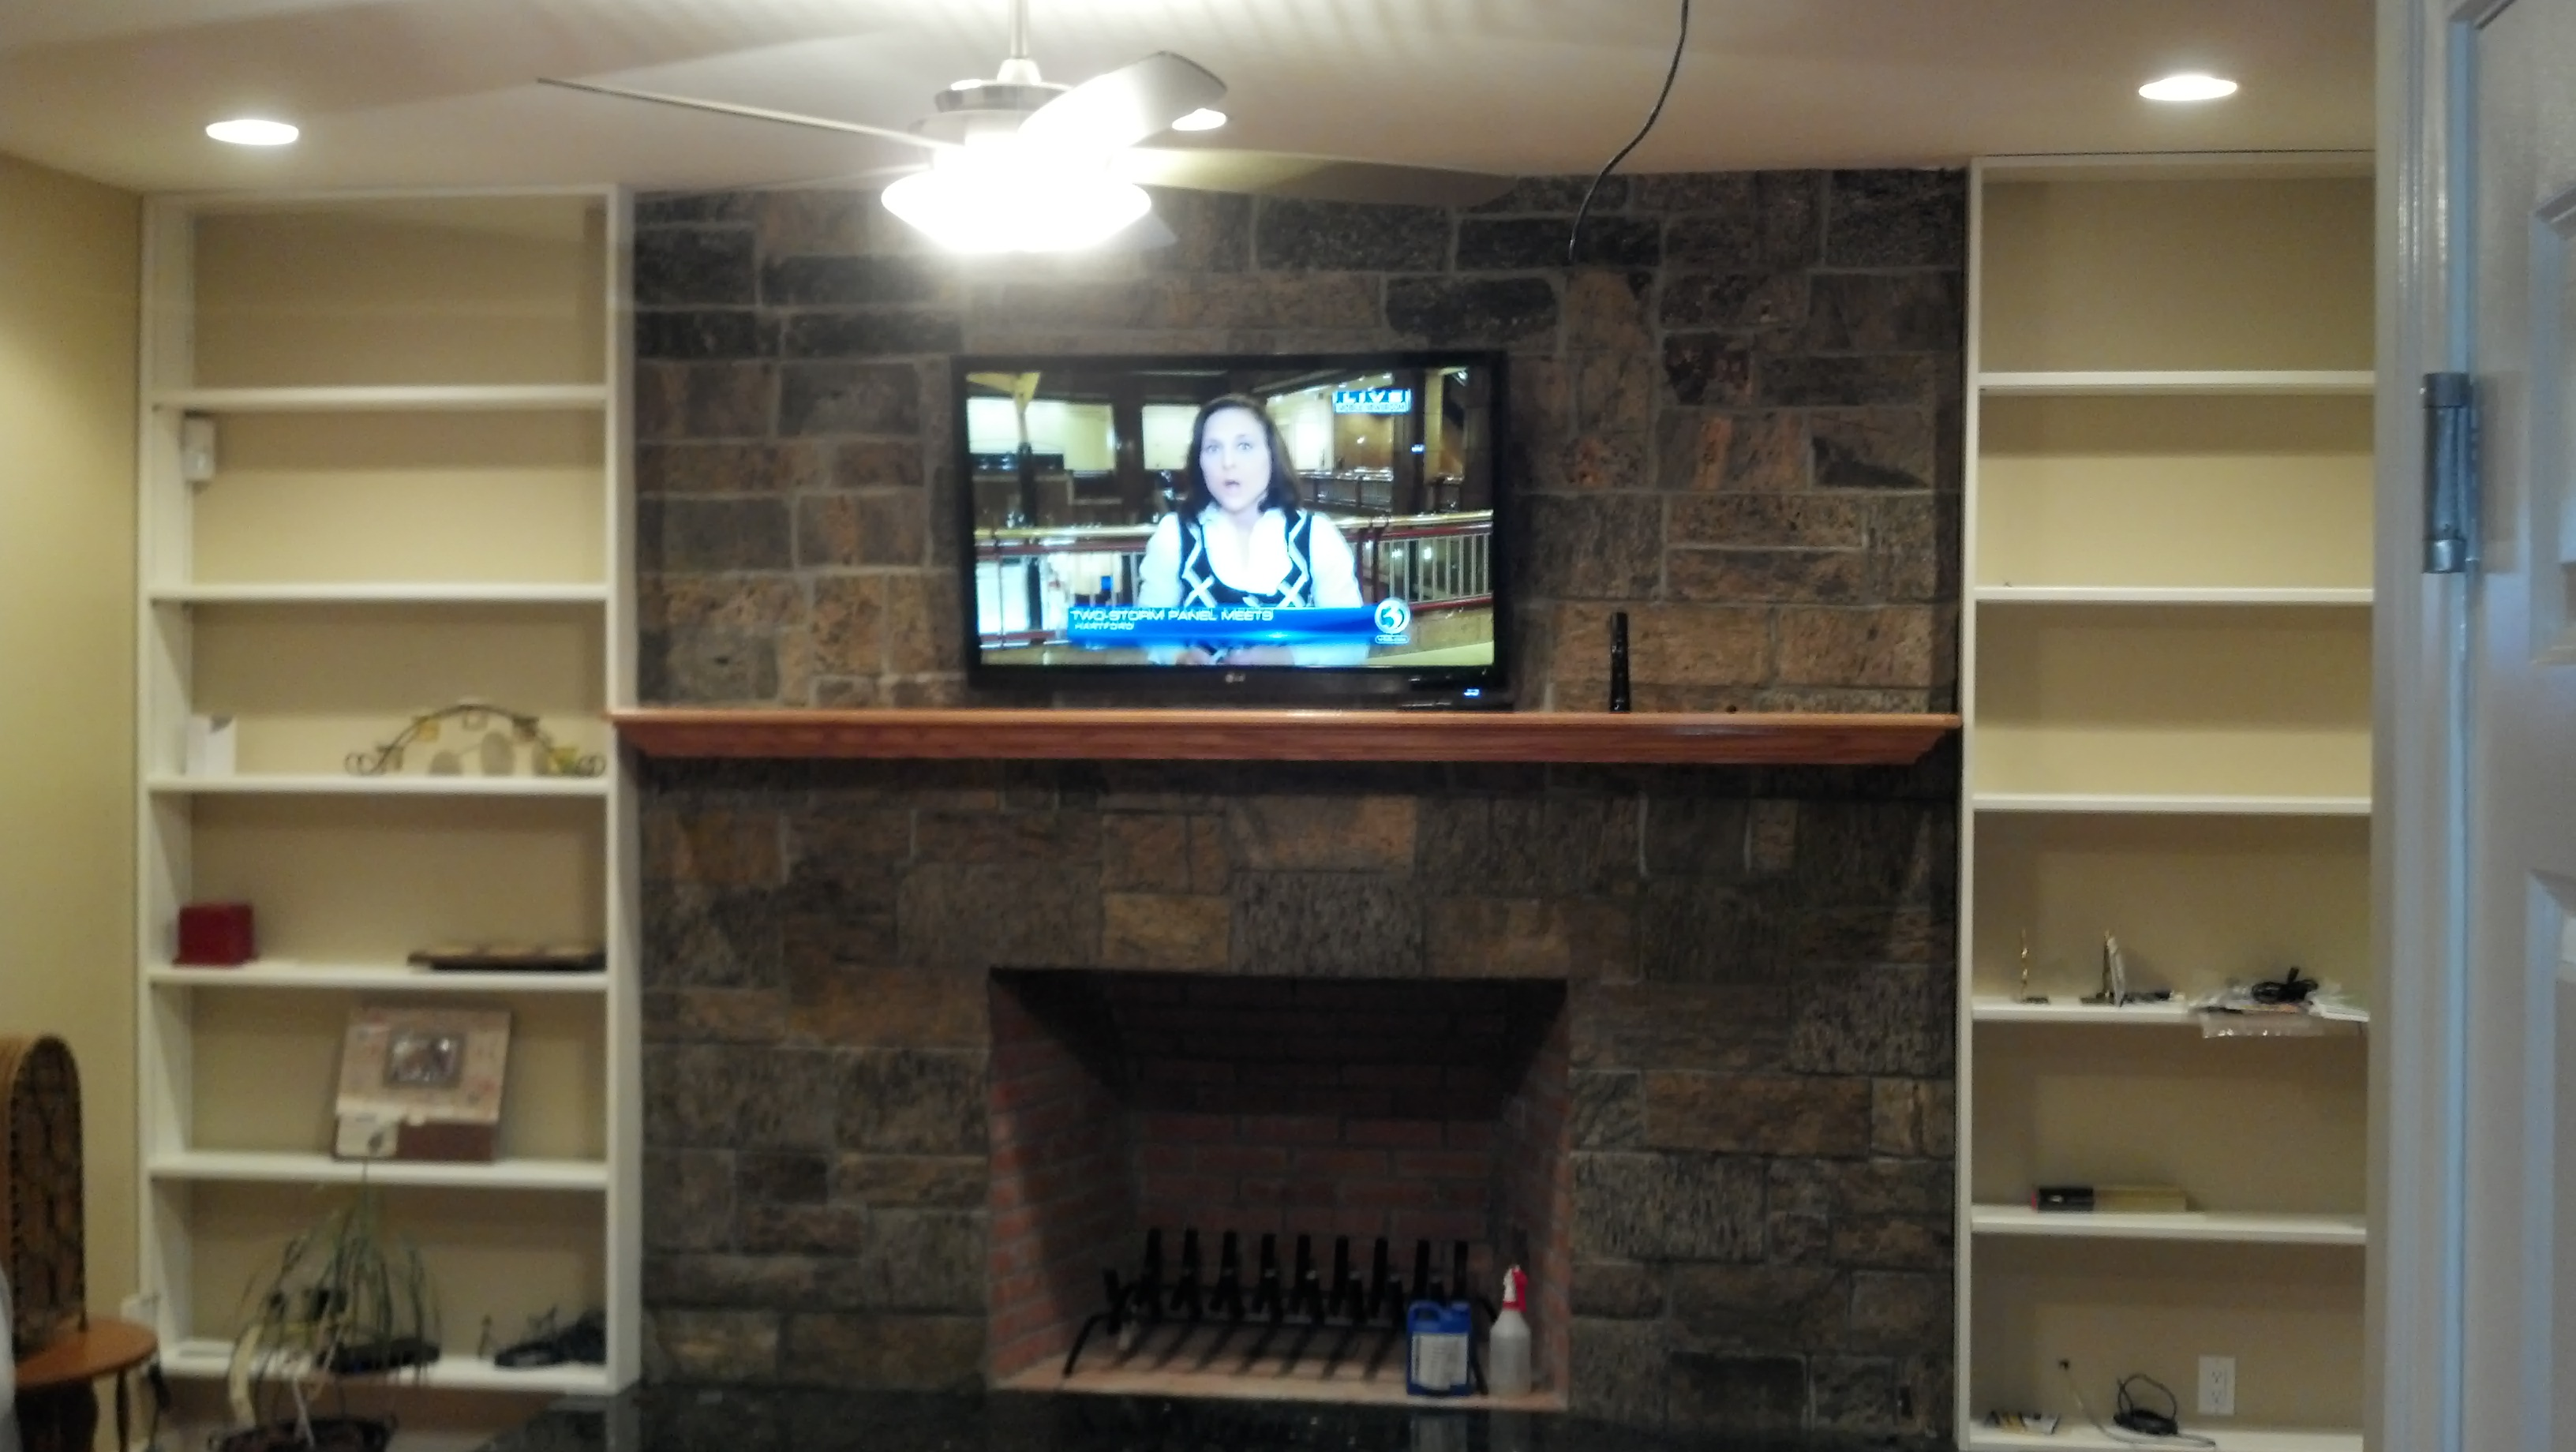 Branford ct mount tv above fireplace home theater installation on install electrical outlet brick wall Multiple Outlet Wiring Diagram Install Light Fixture